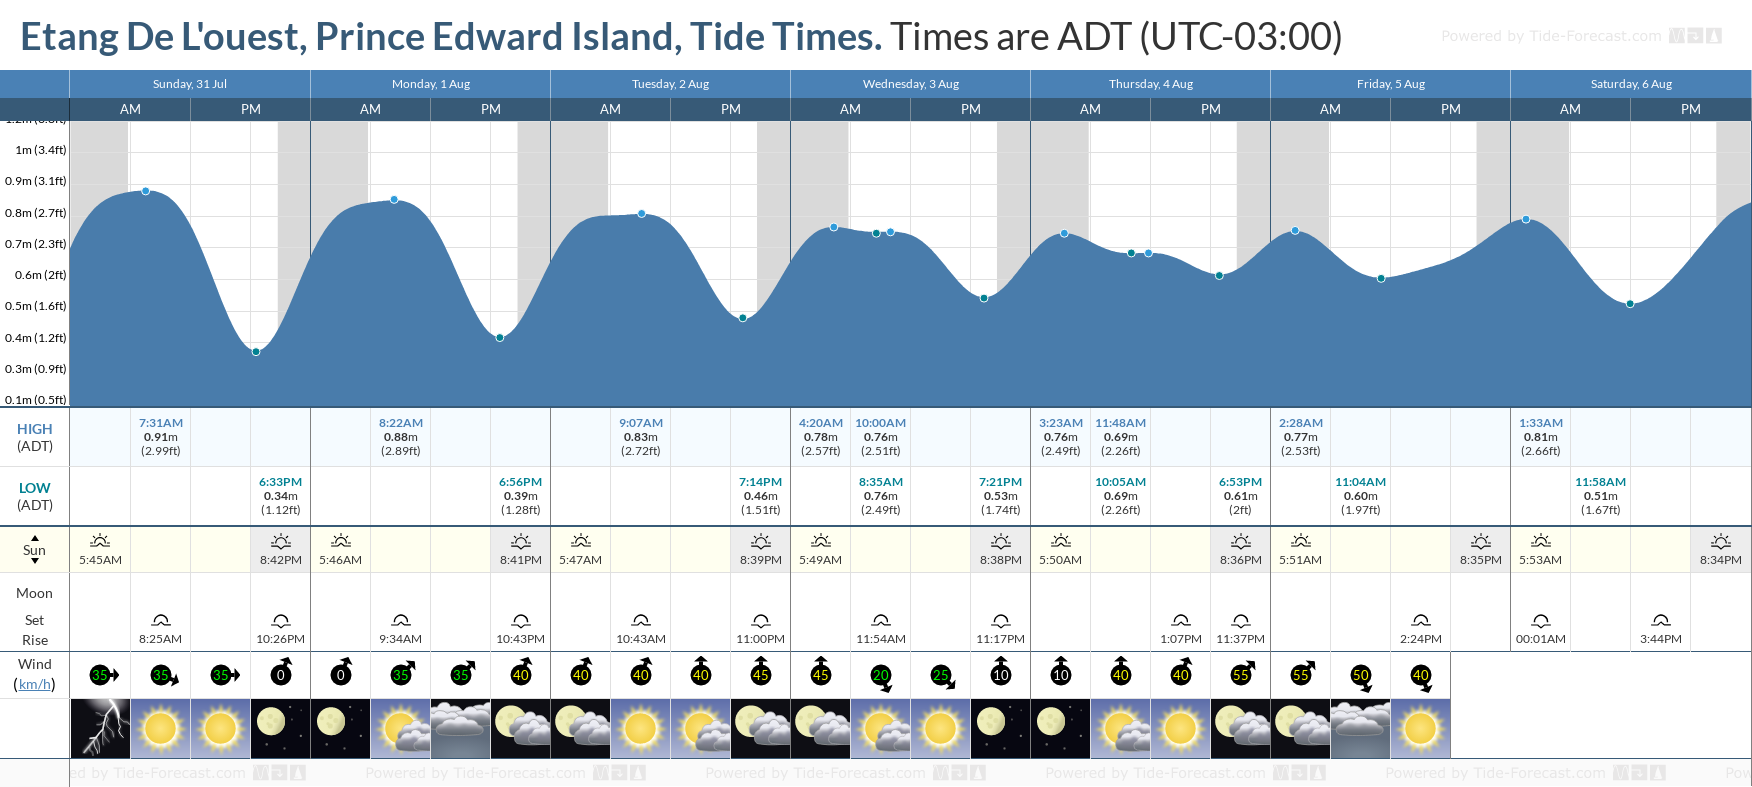 Etang De L'ouest, Prince Edward Island Tide Chart including high and low tide tide times for the next 7 days